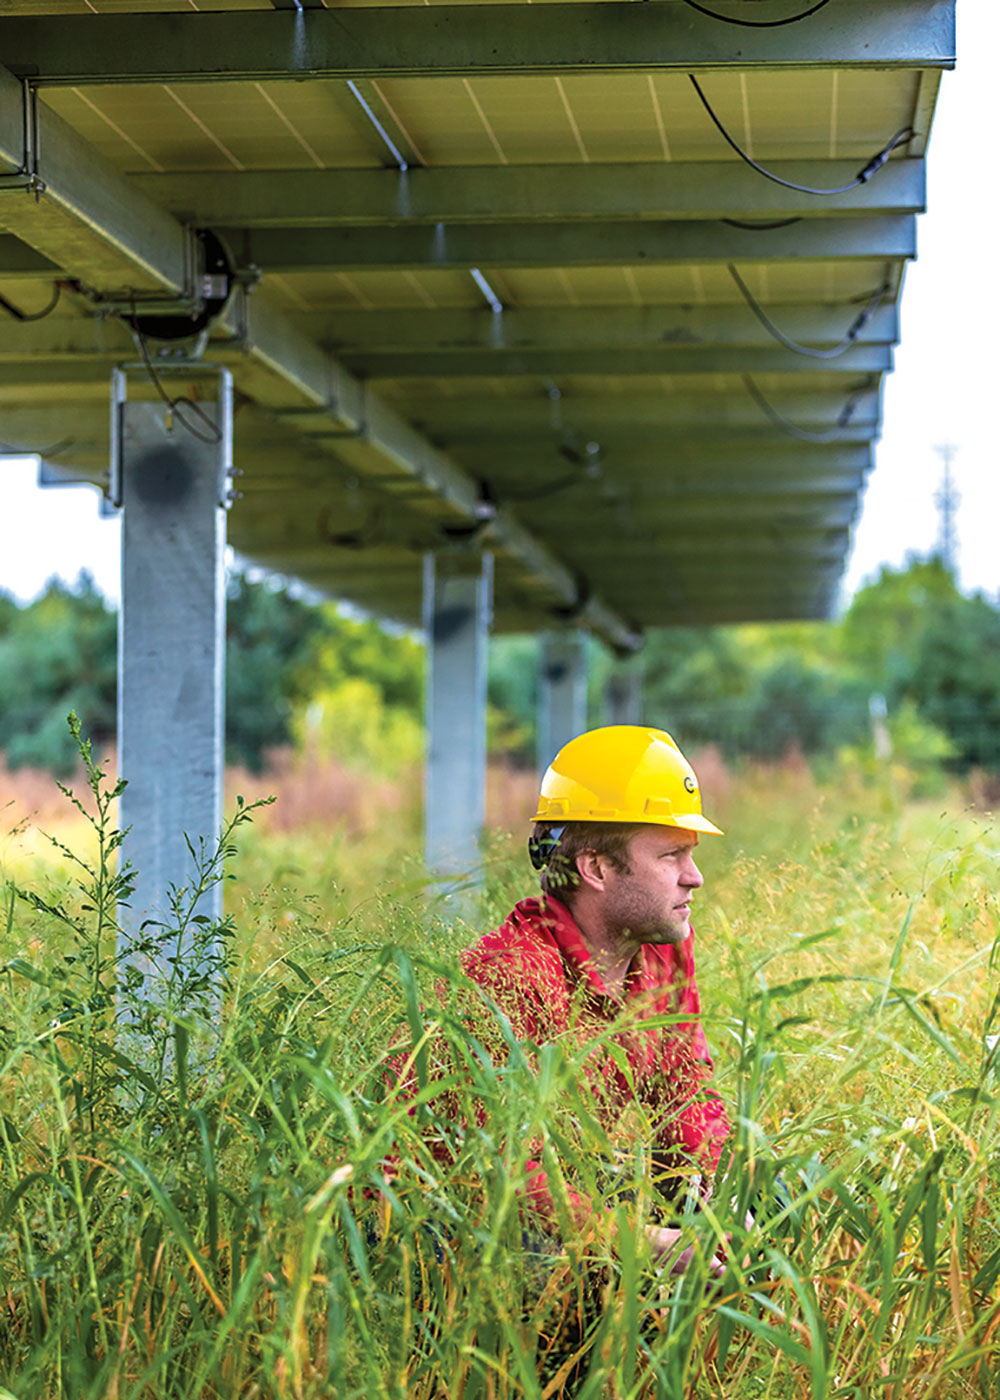 A pollinator test plot underneath the PV array at the Chisago Solar Site in Minnesota. Photo courtesy INSPIRE-Minnesota, NREL/DOE.